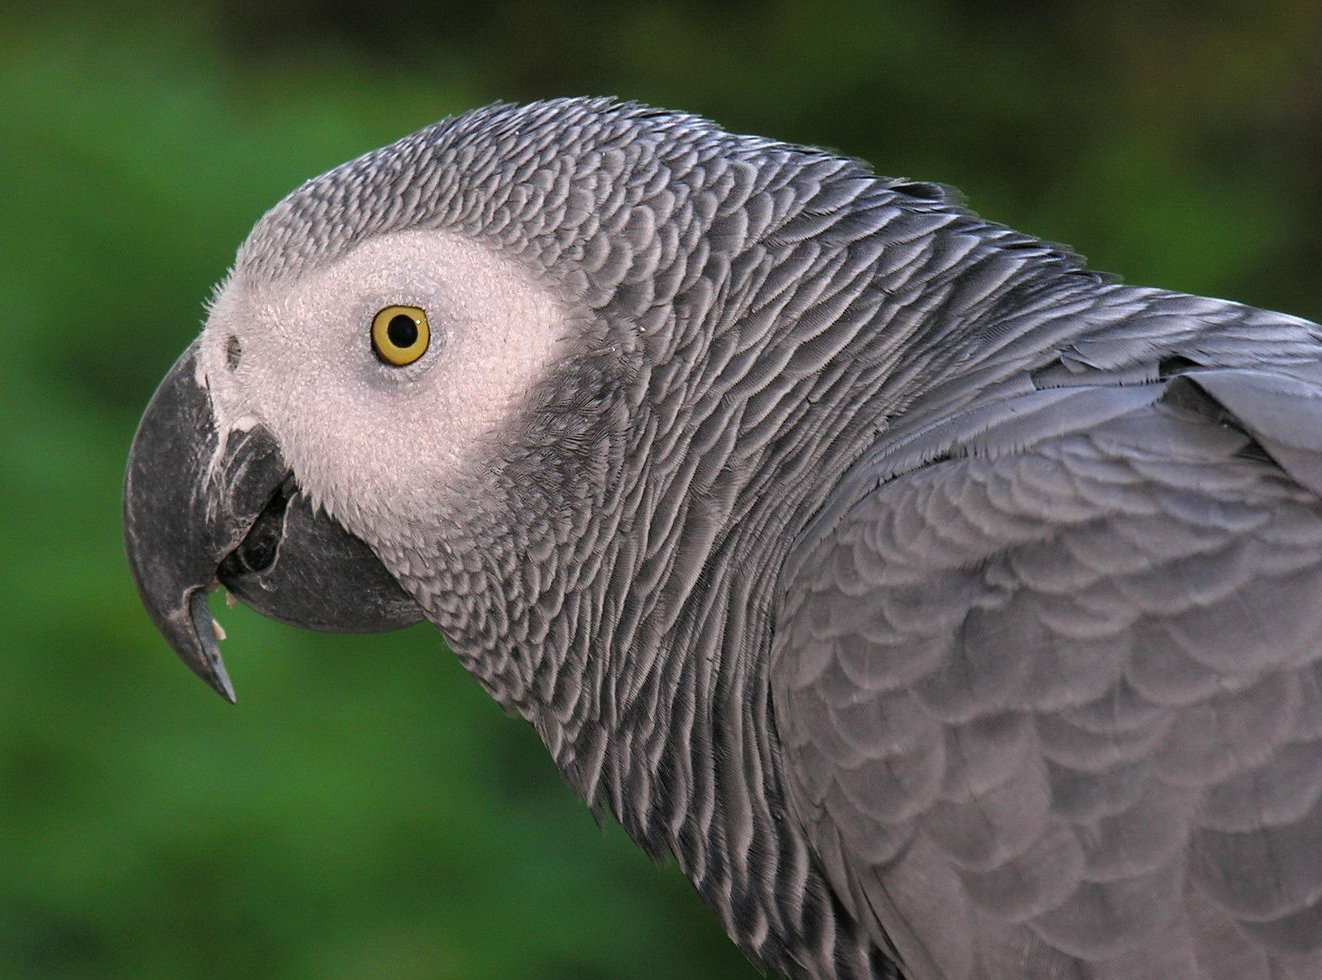 The African Gray Parrot's funny reputation is leading to its downfall in wild numbers.